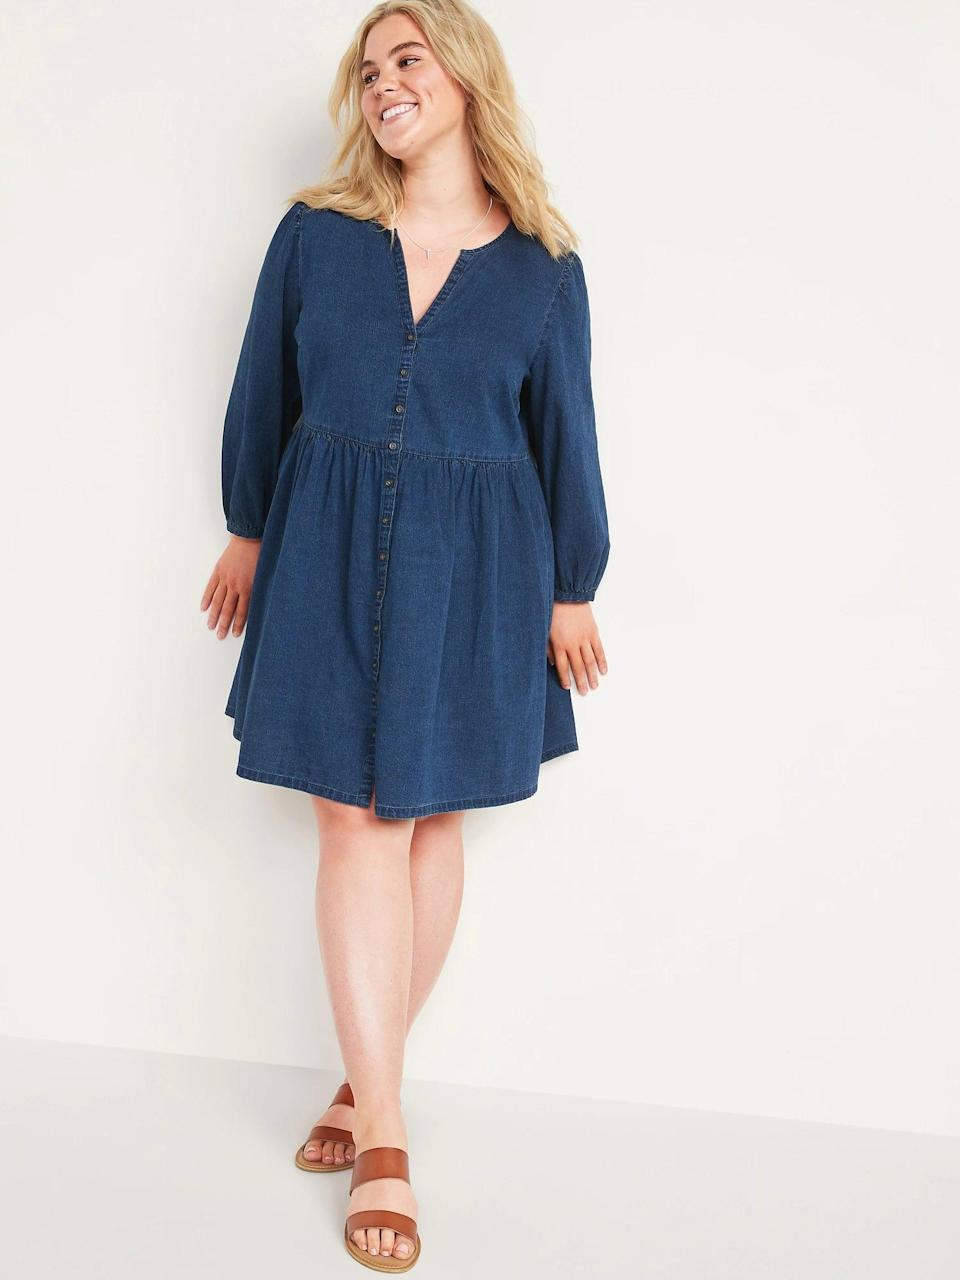 <p>This <span>Old Navy Long-Sleeve Fit &amp; Flare Jean Mini Dress</span> ($40) is something you could wear to work, on the weekend, or whenever you like. If you love denim but want something other than pants, this is a great option.</p>